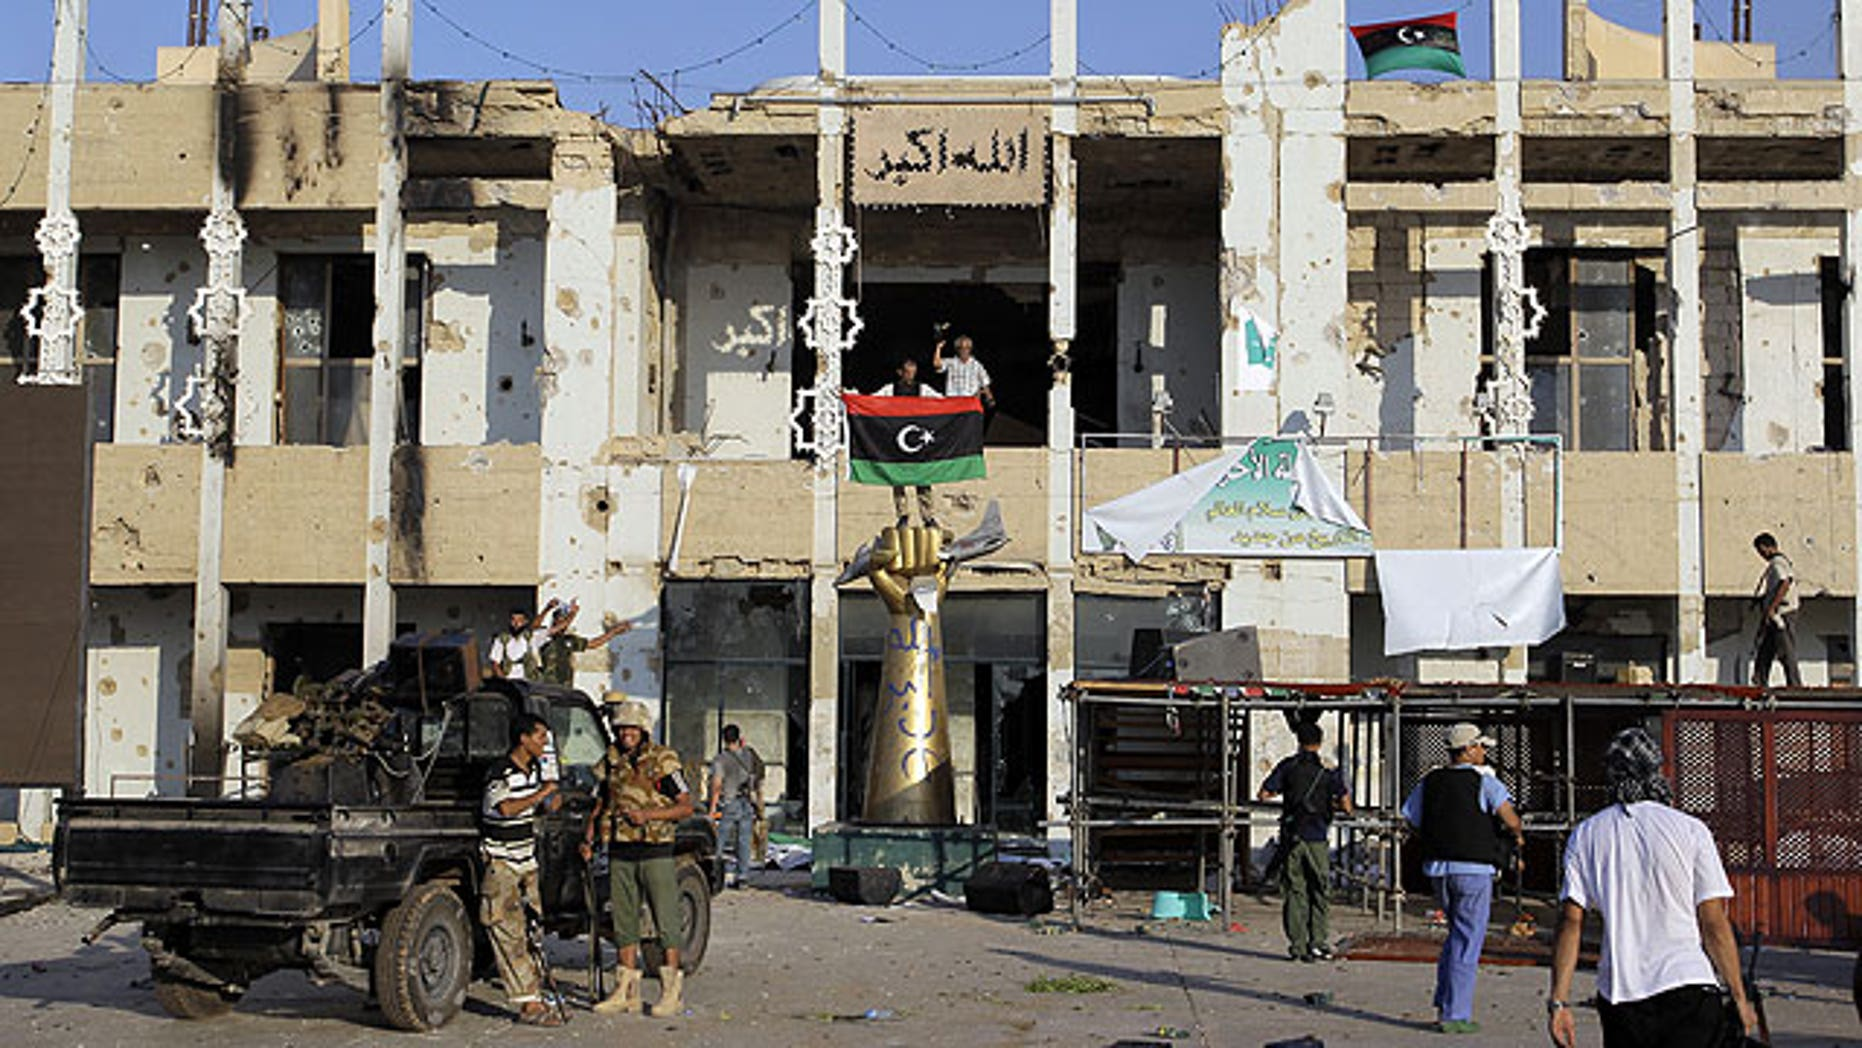 August 23: Rebel fighters seen inside the main Muammar Qaddafi compound in Bab al-Aziziya in Tripoli, Libya.